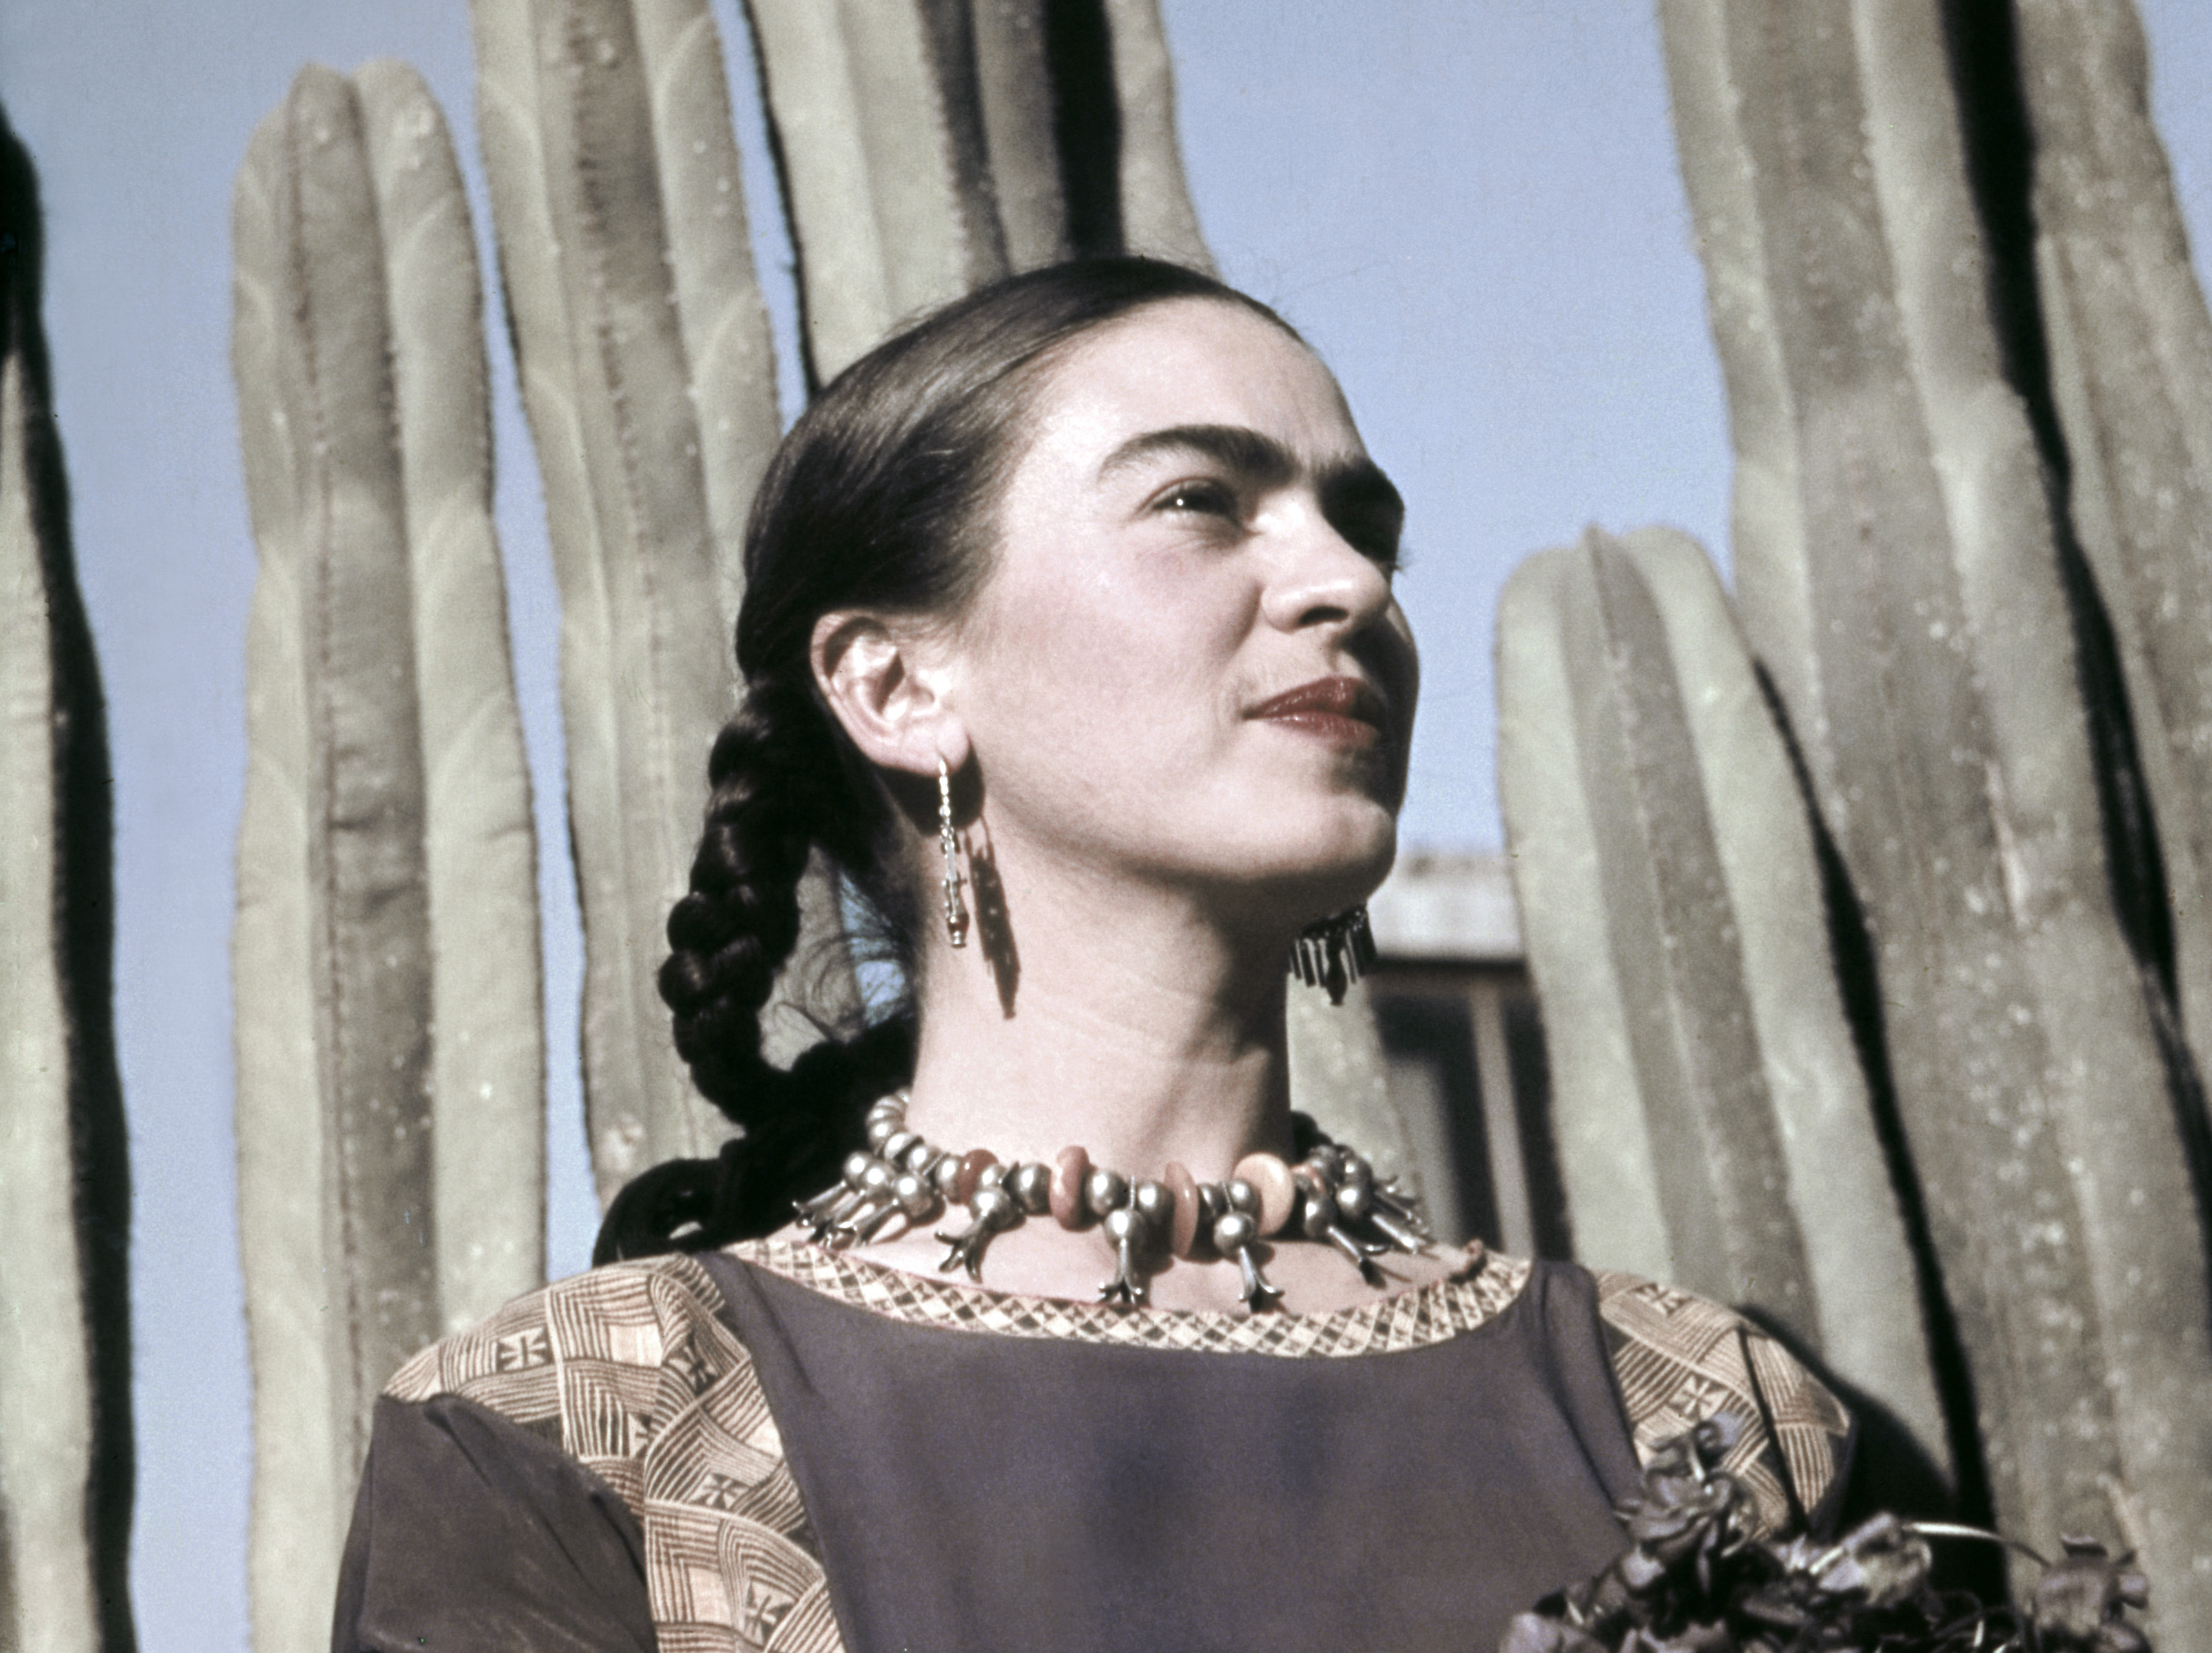 An Extensive Digital Exhibition of Frida Kahlo's Works Are Available to Peruse Through Right Now